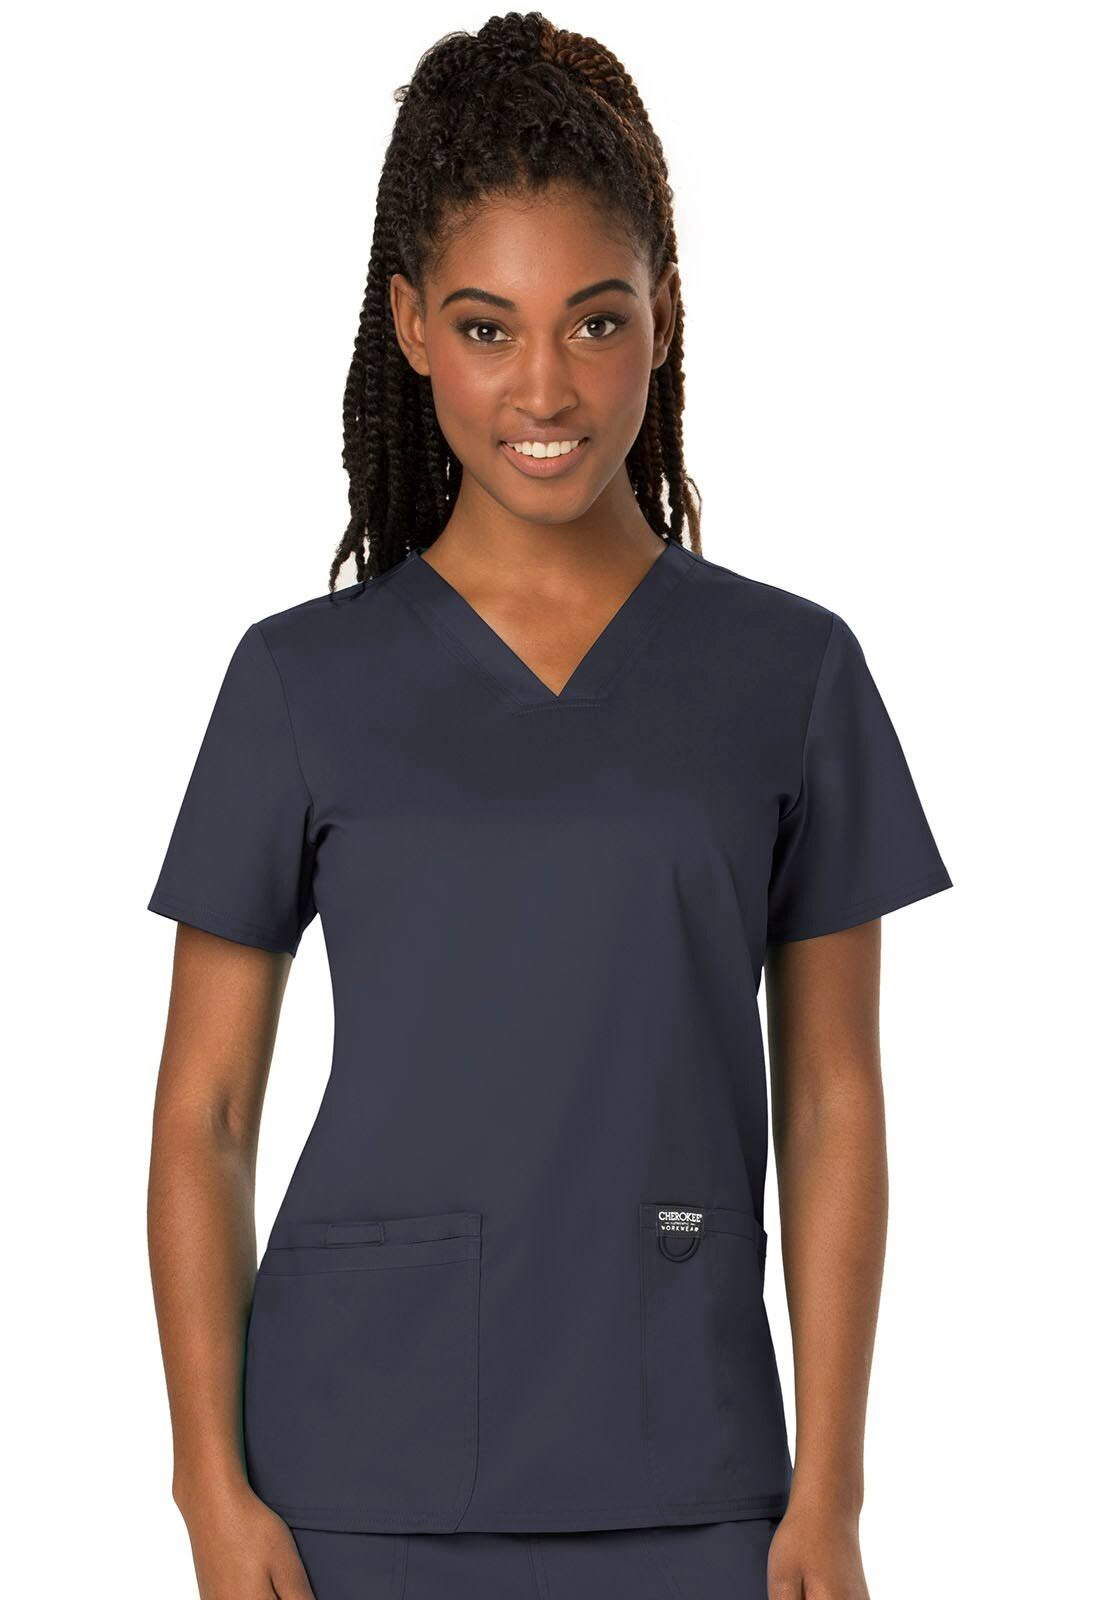 Cherokee Workwear Revolution V-Neck Scrub Top - M - Pewter